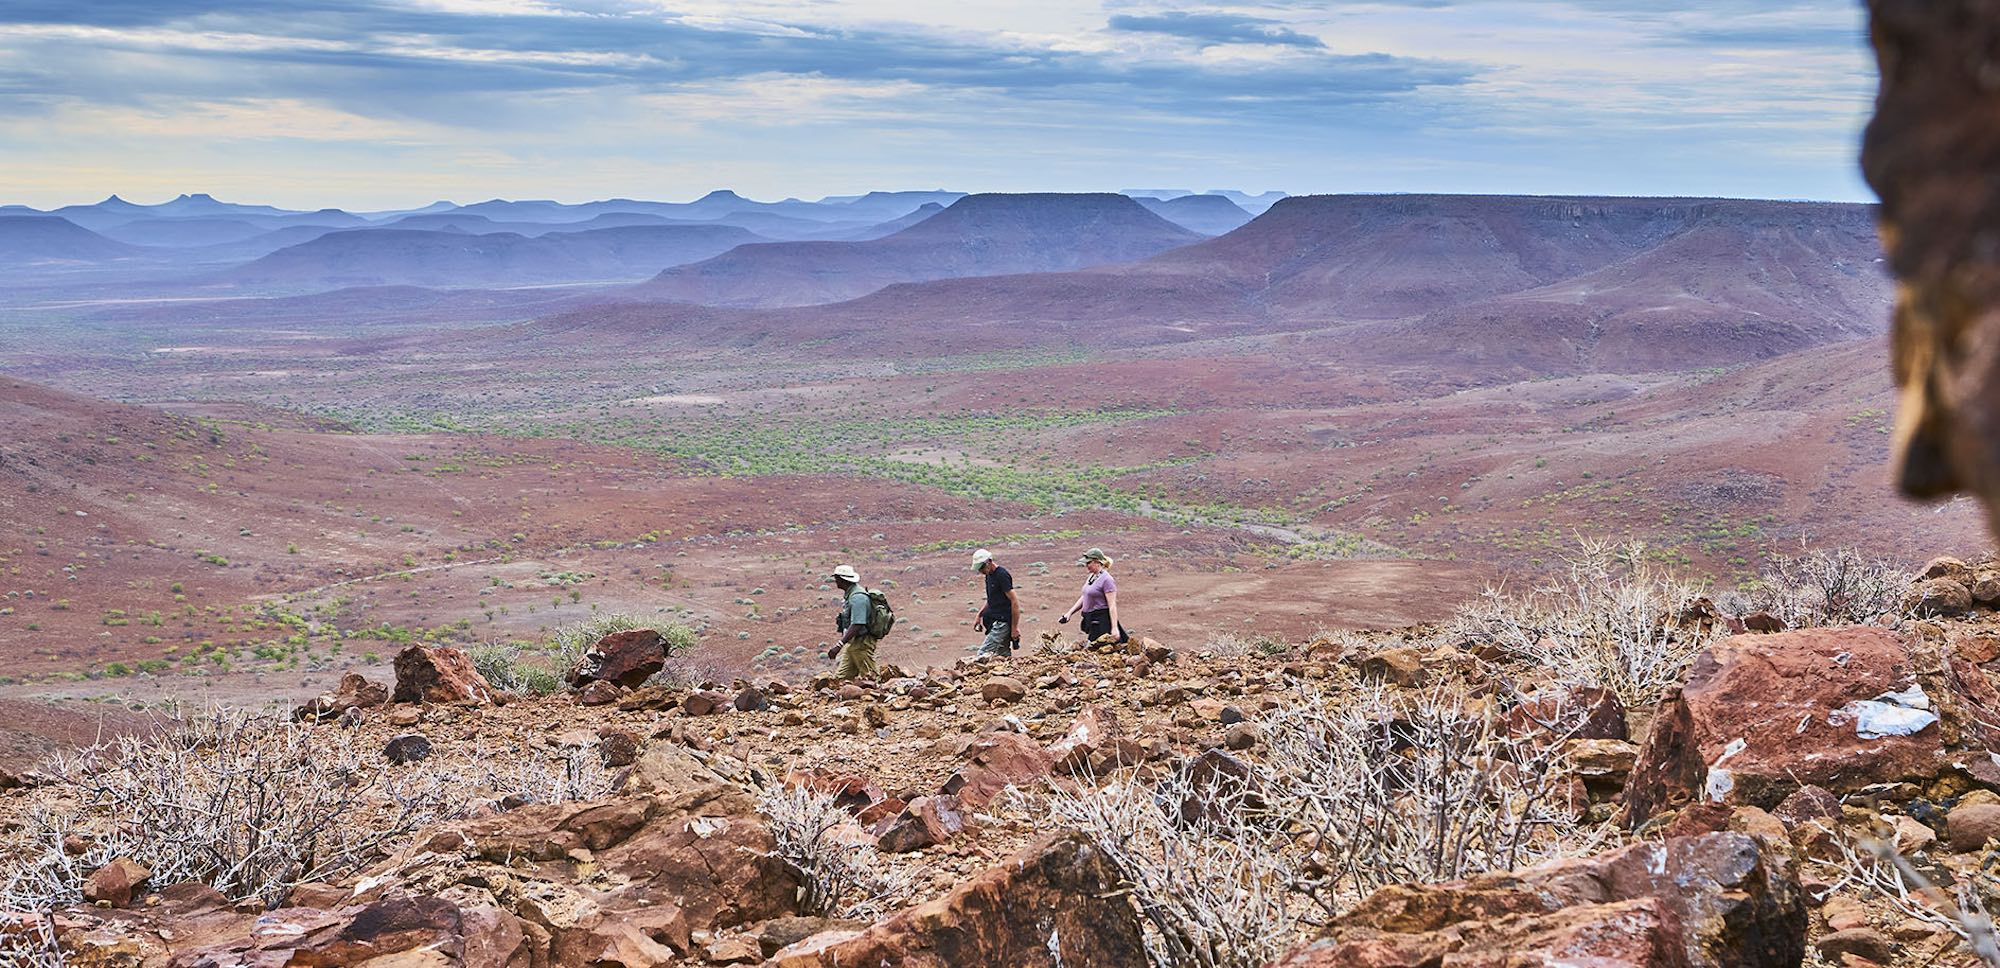 A guide leads three tourists along a rocky trail overlooking the stunning scenery of northern Namibia.